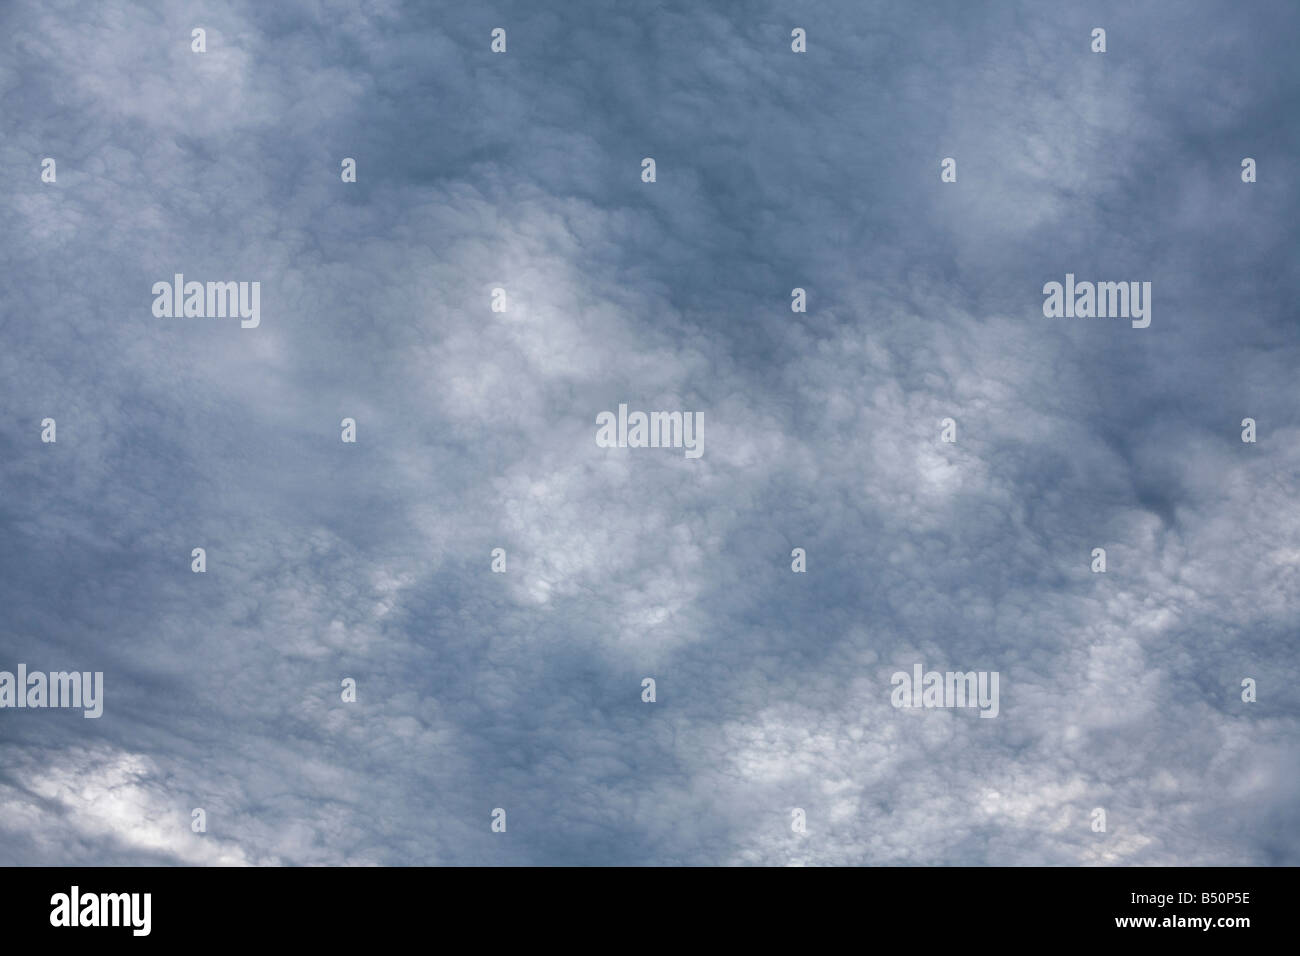 Clouds on an Occluded front - Stock Image